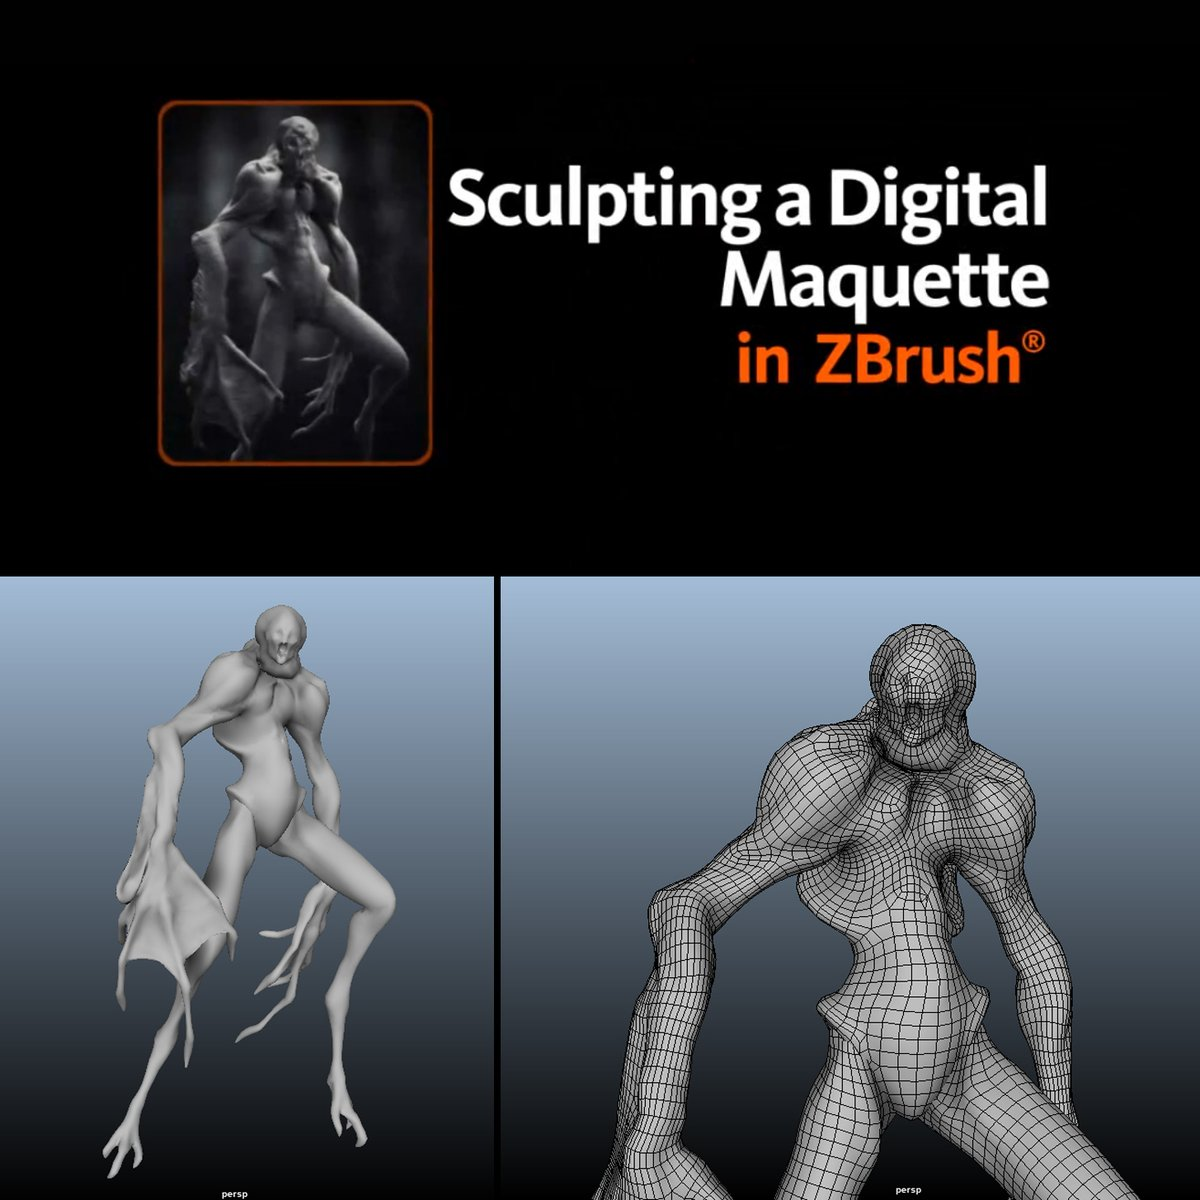 Art Study .01 Learning Zbrush for creating a digital maquette  •Zbrush•  #3dstudy #3D #3dartist #adventure #learningpath #cg #vfx #zbrush #maquette #sculpting #digital #tocreative #to-creative https://t.co/CghuIpjb5G